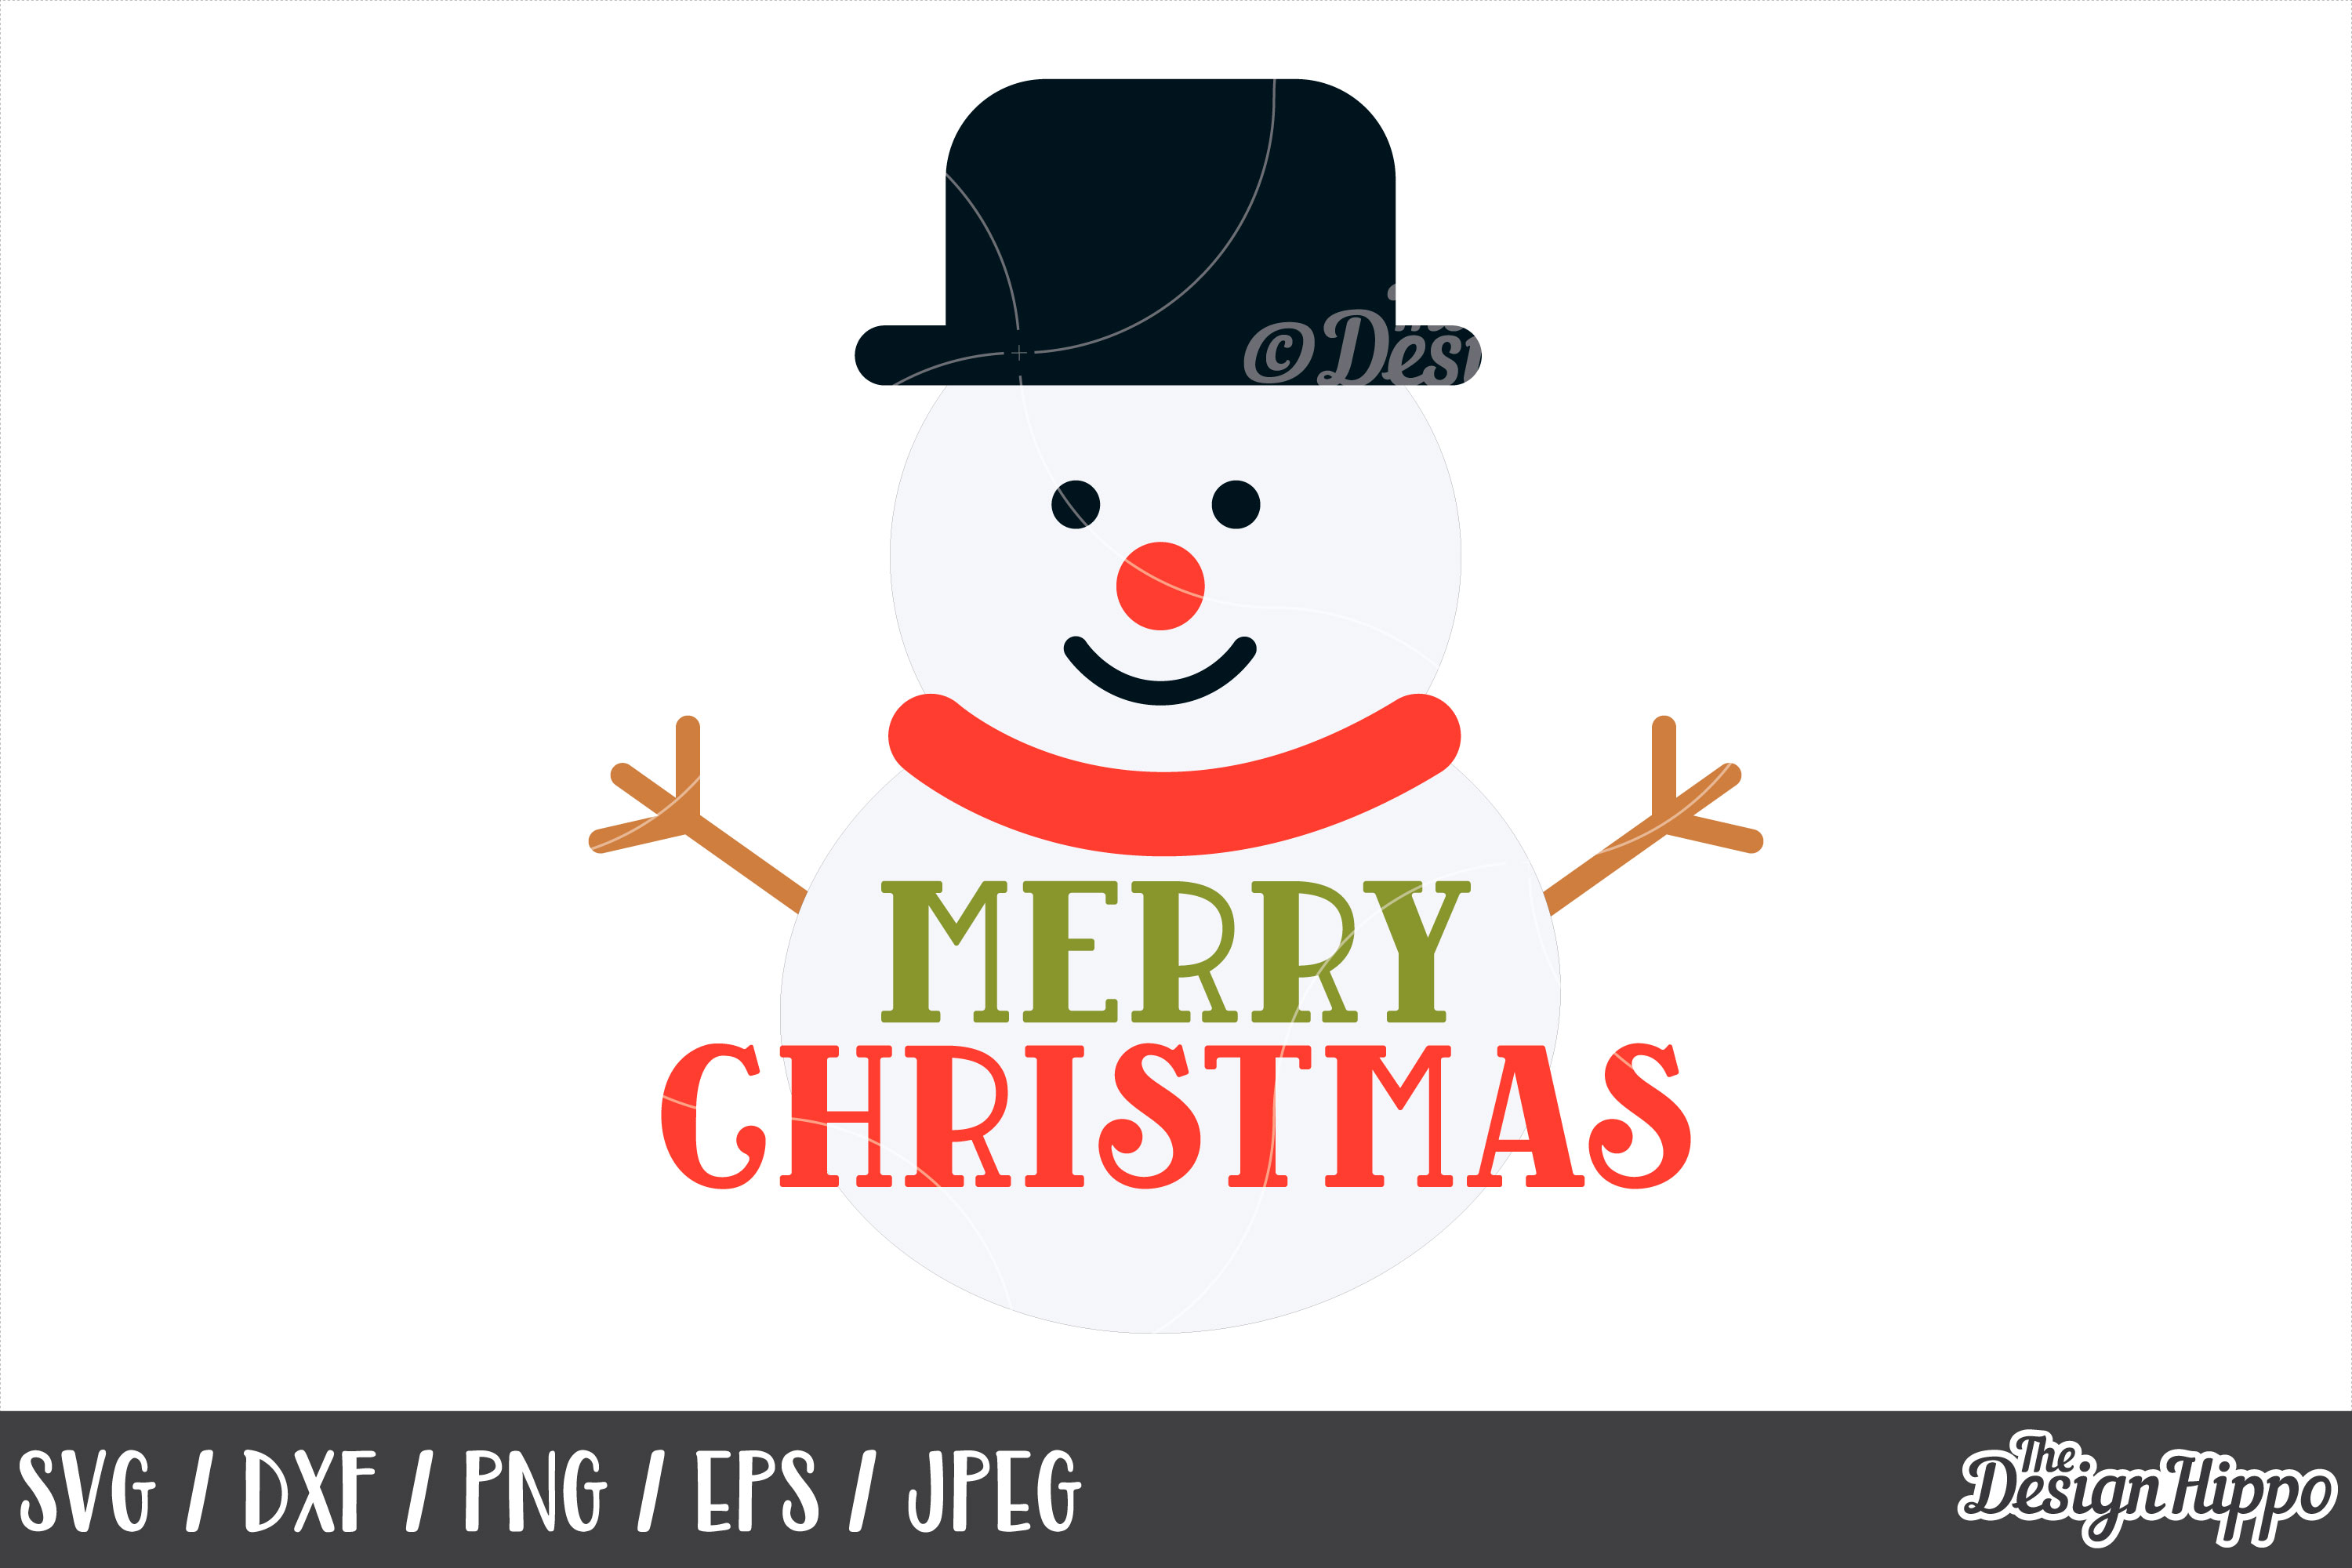 Merry Christmas SVG Bundle, Christmas SVG, PNG, DXF Cut File example image 11